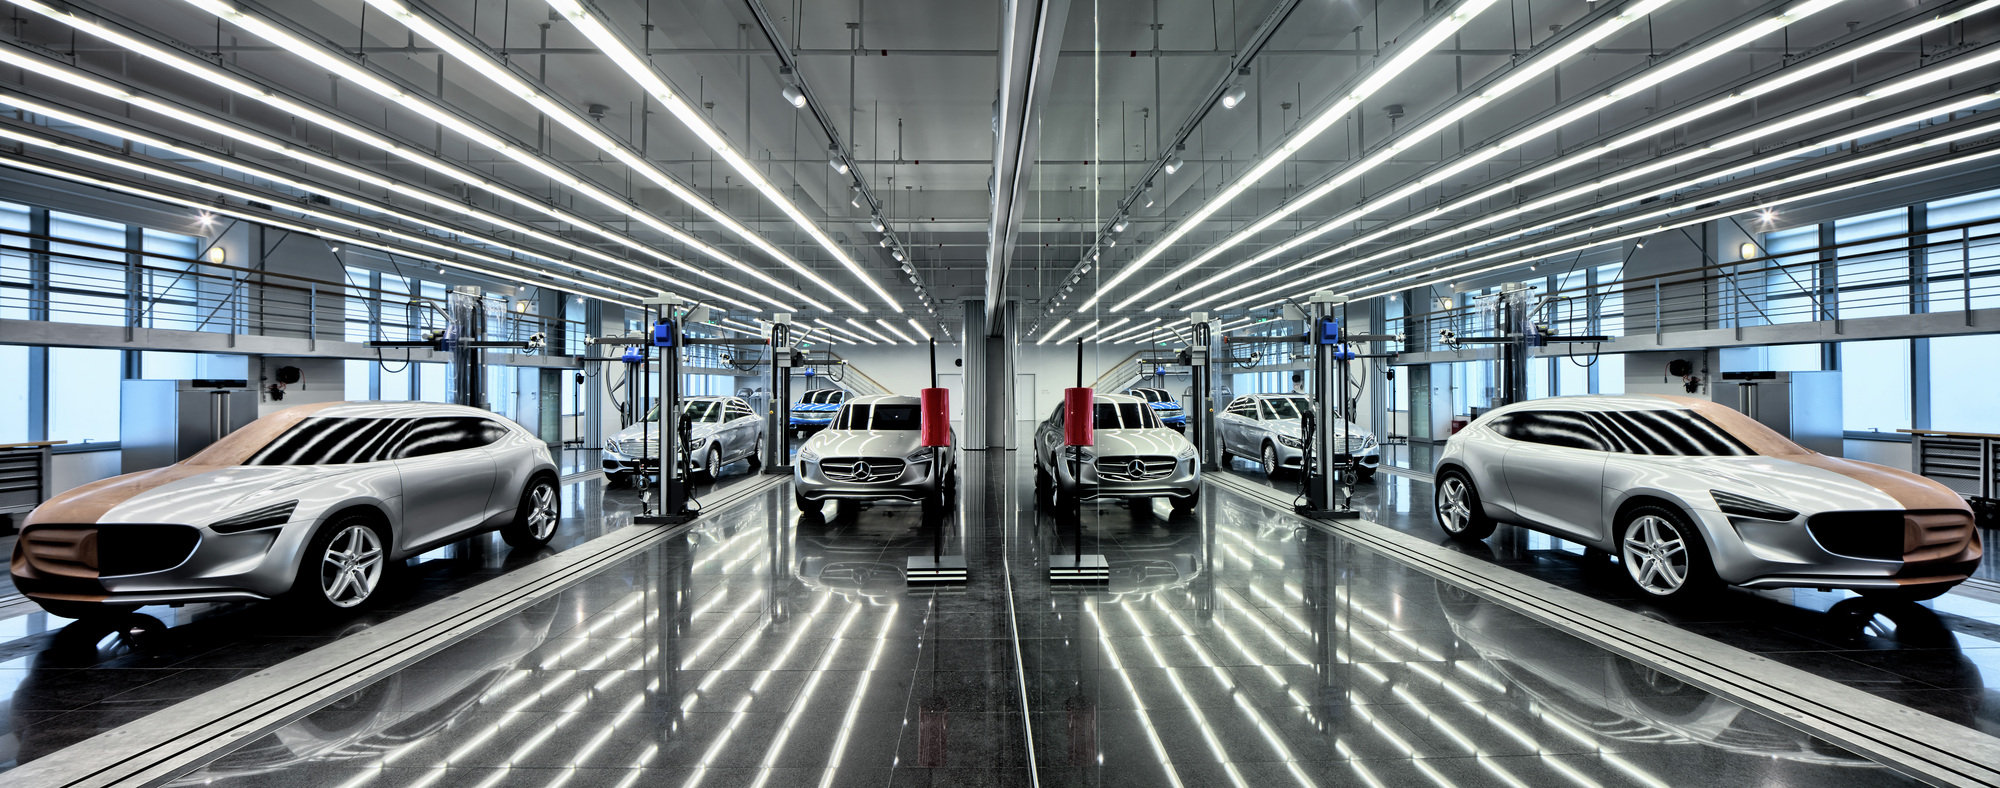 Mercedes benz advanced design center of china anyscale for Mercedes benz training center